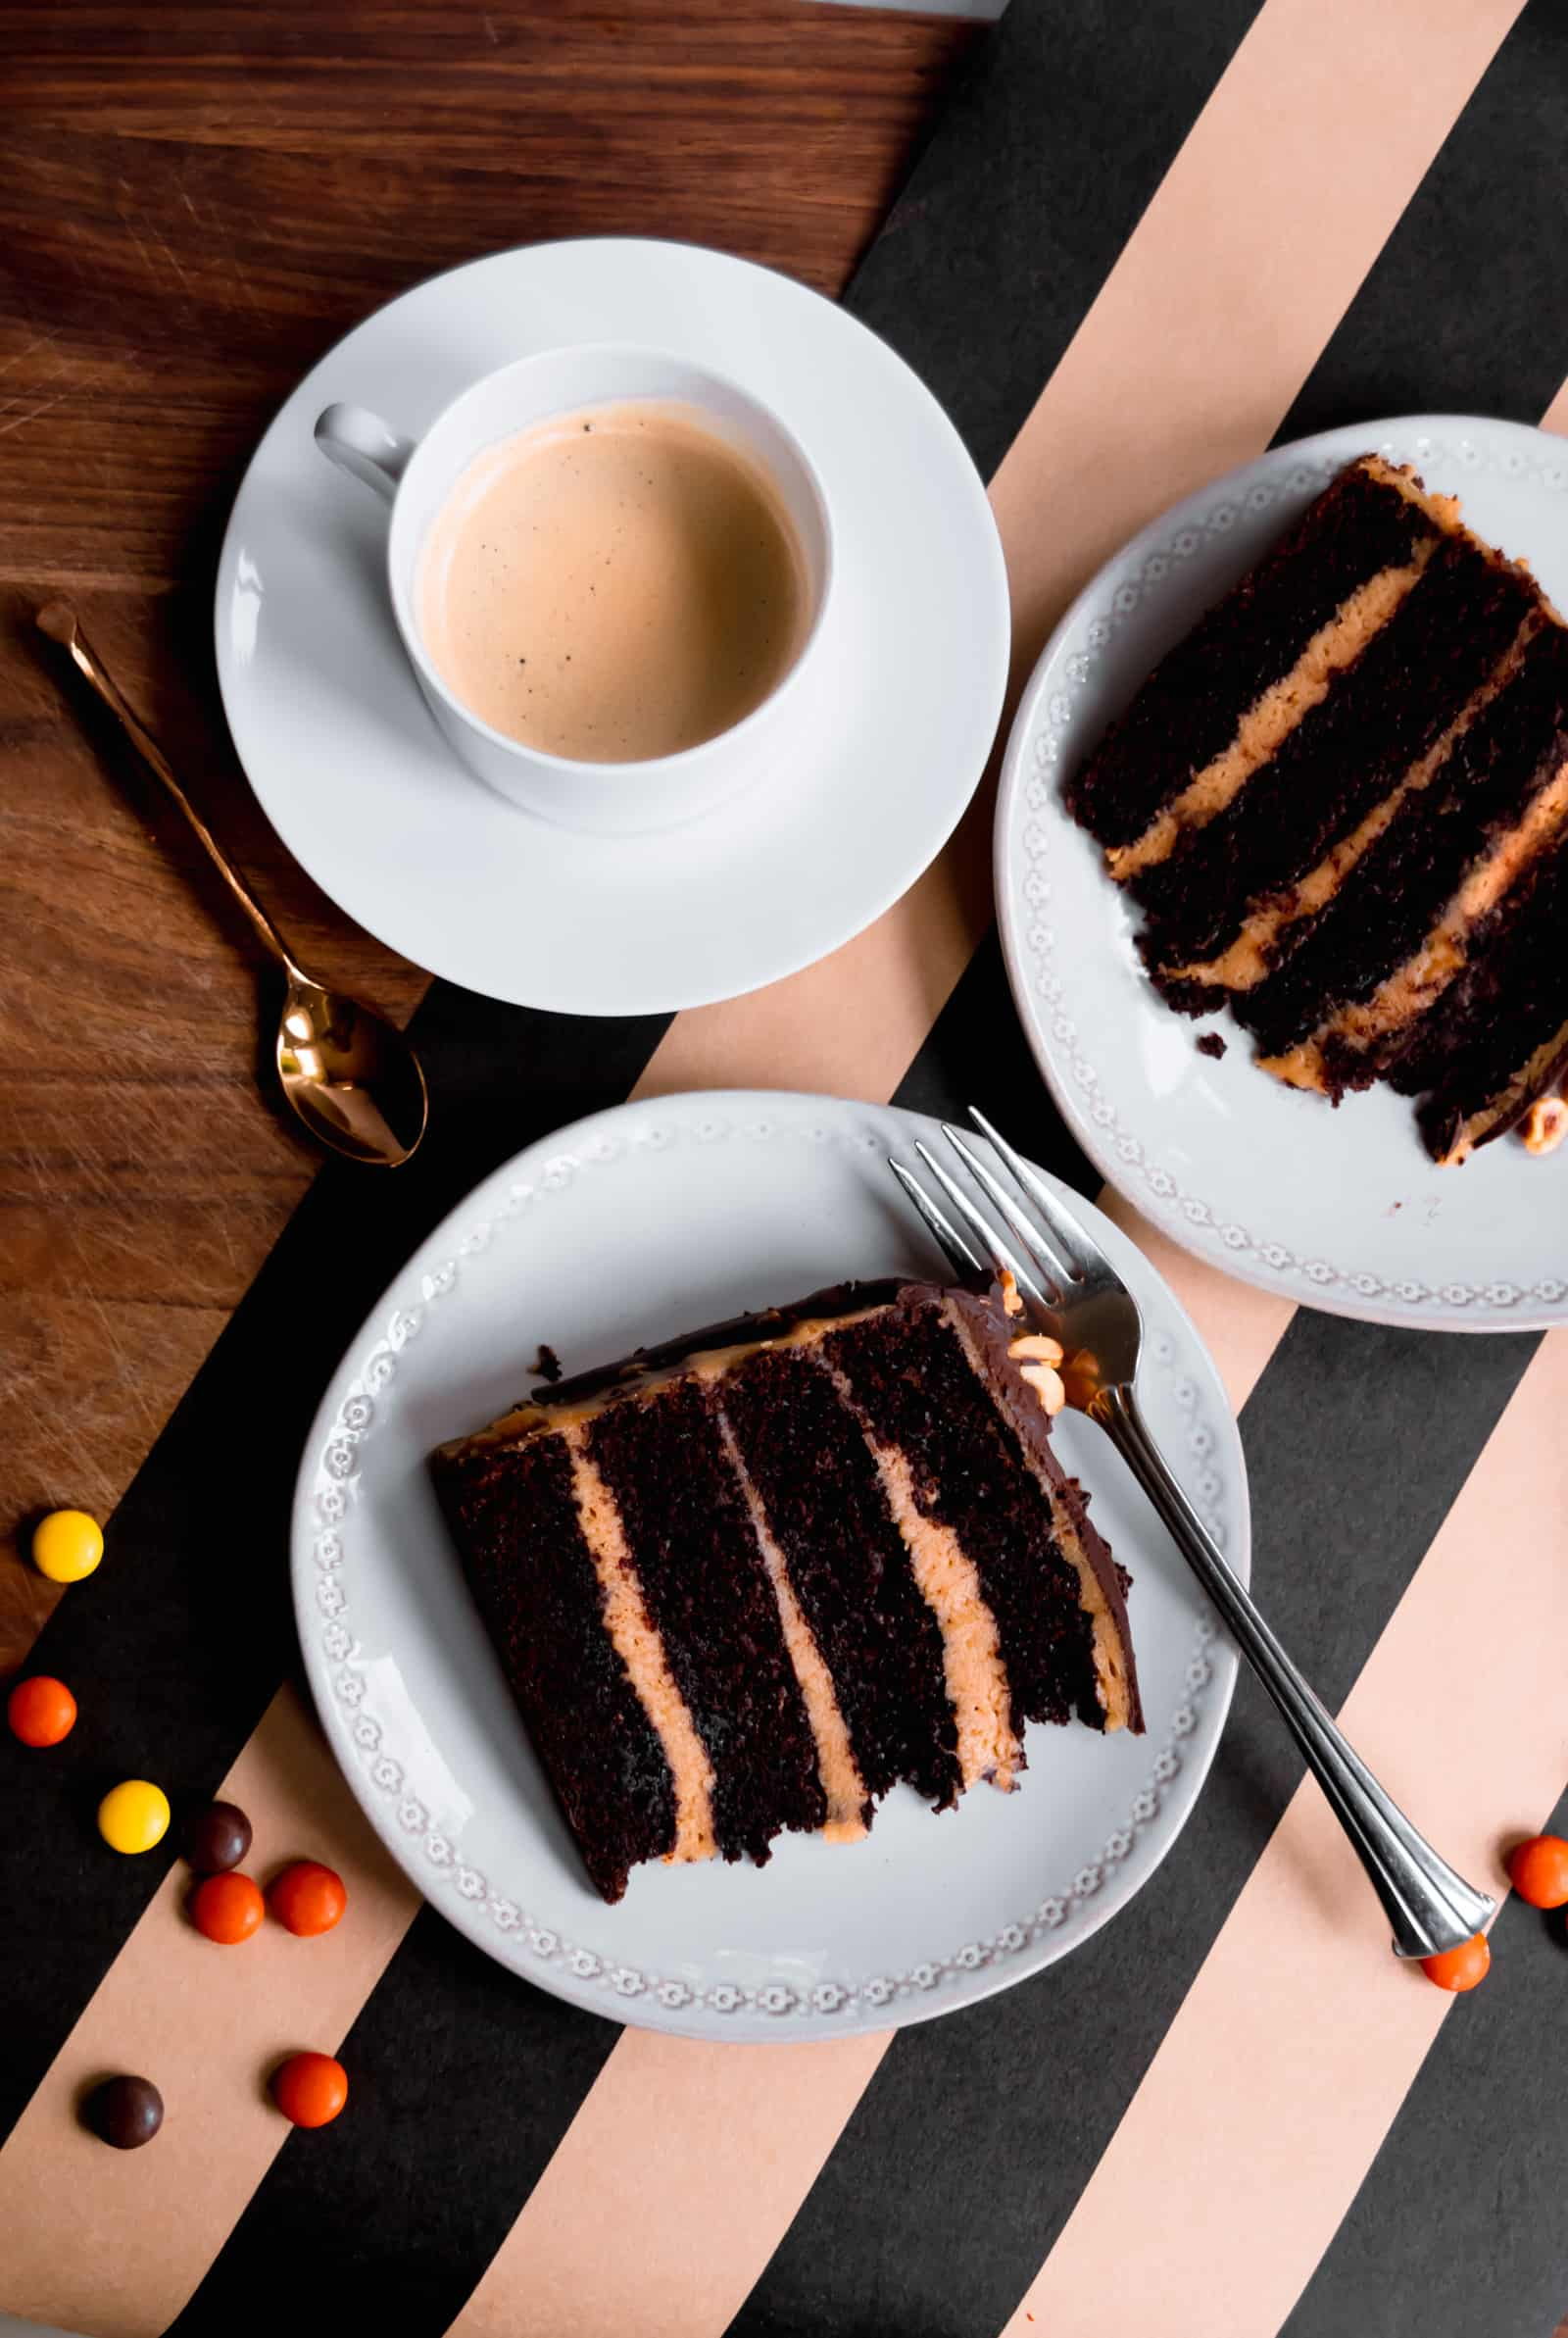 overhead of two pieces of four layer chocolate cake with peanut butter mousse filling and a cup of coffee on a black and brown striped runner with reese's pieces sprinkled on it